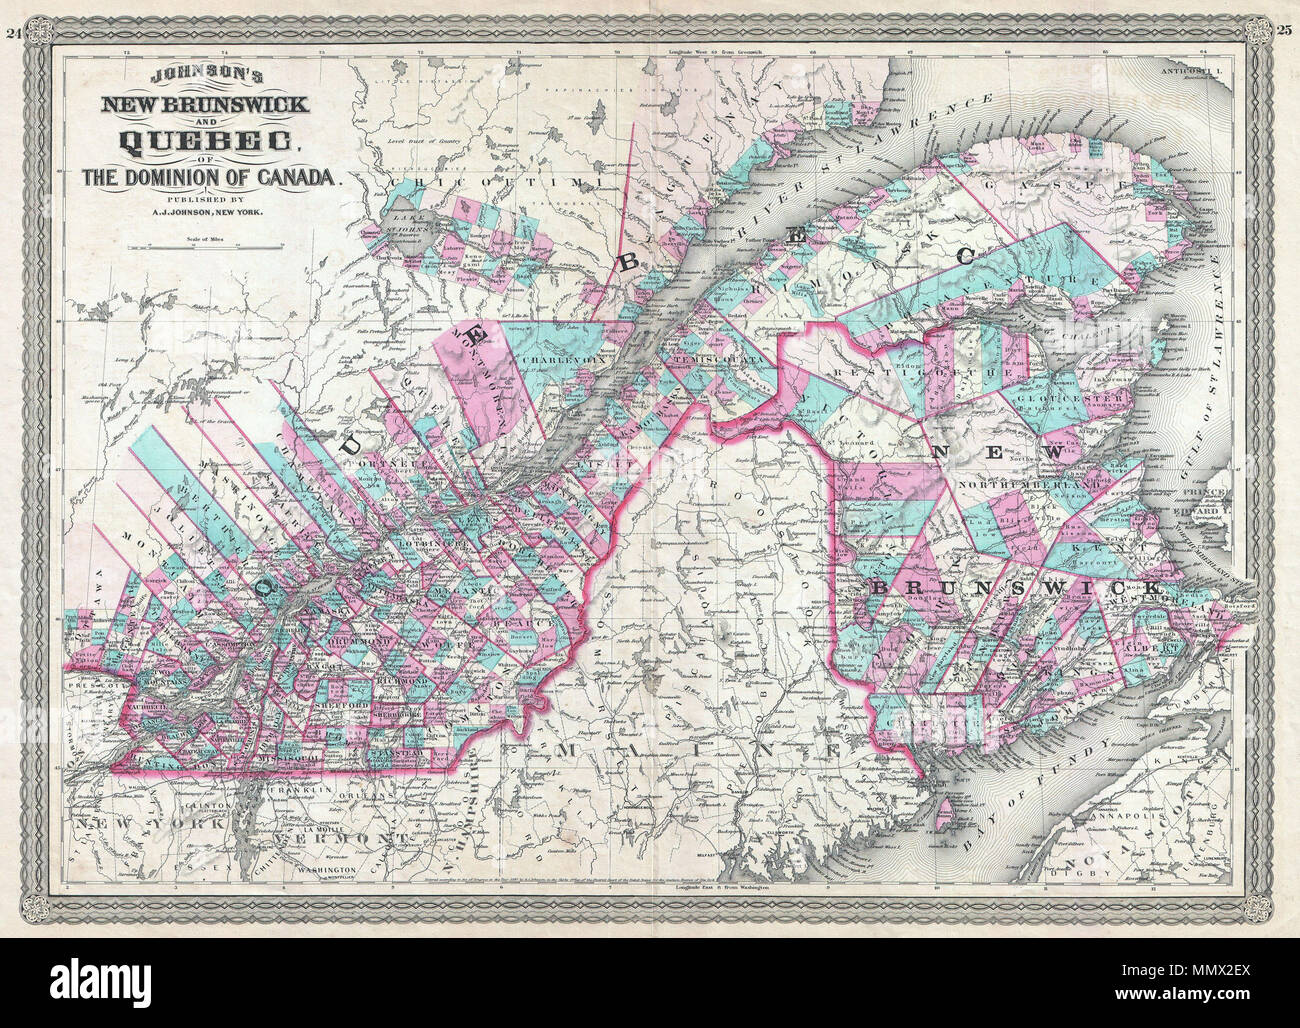 Map Of New York District Courts.English This Is A J Johnson 1870 Map Of Quebec And New Brunswick